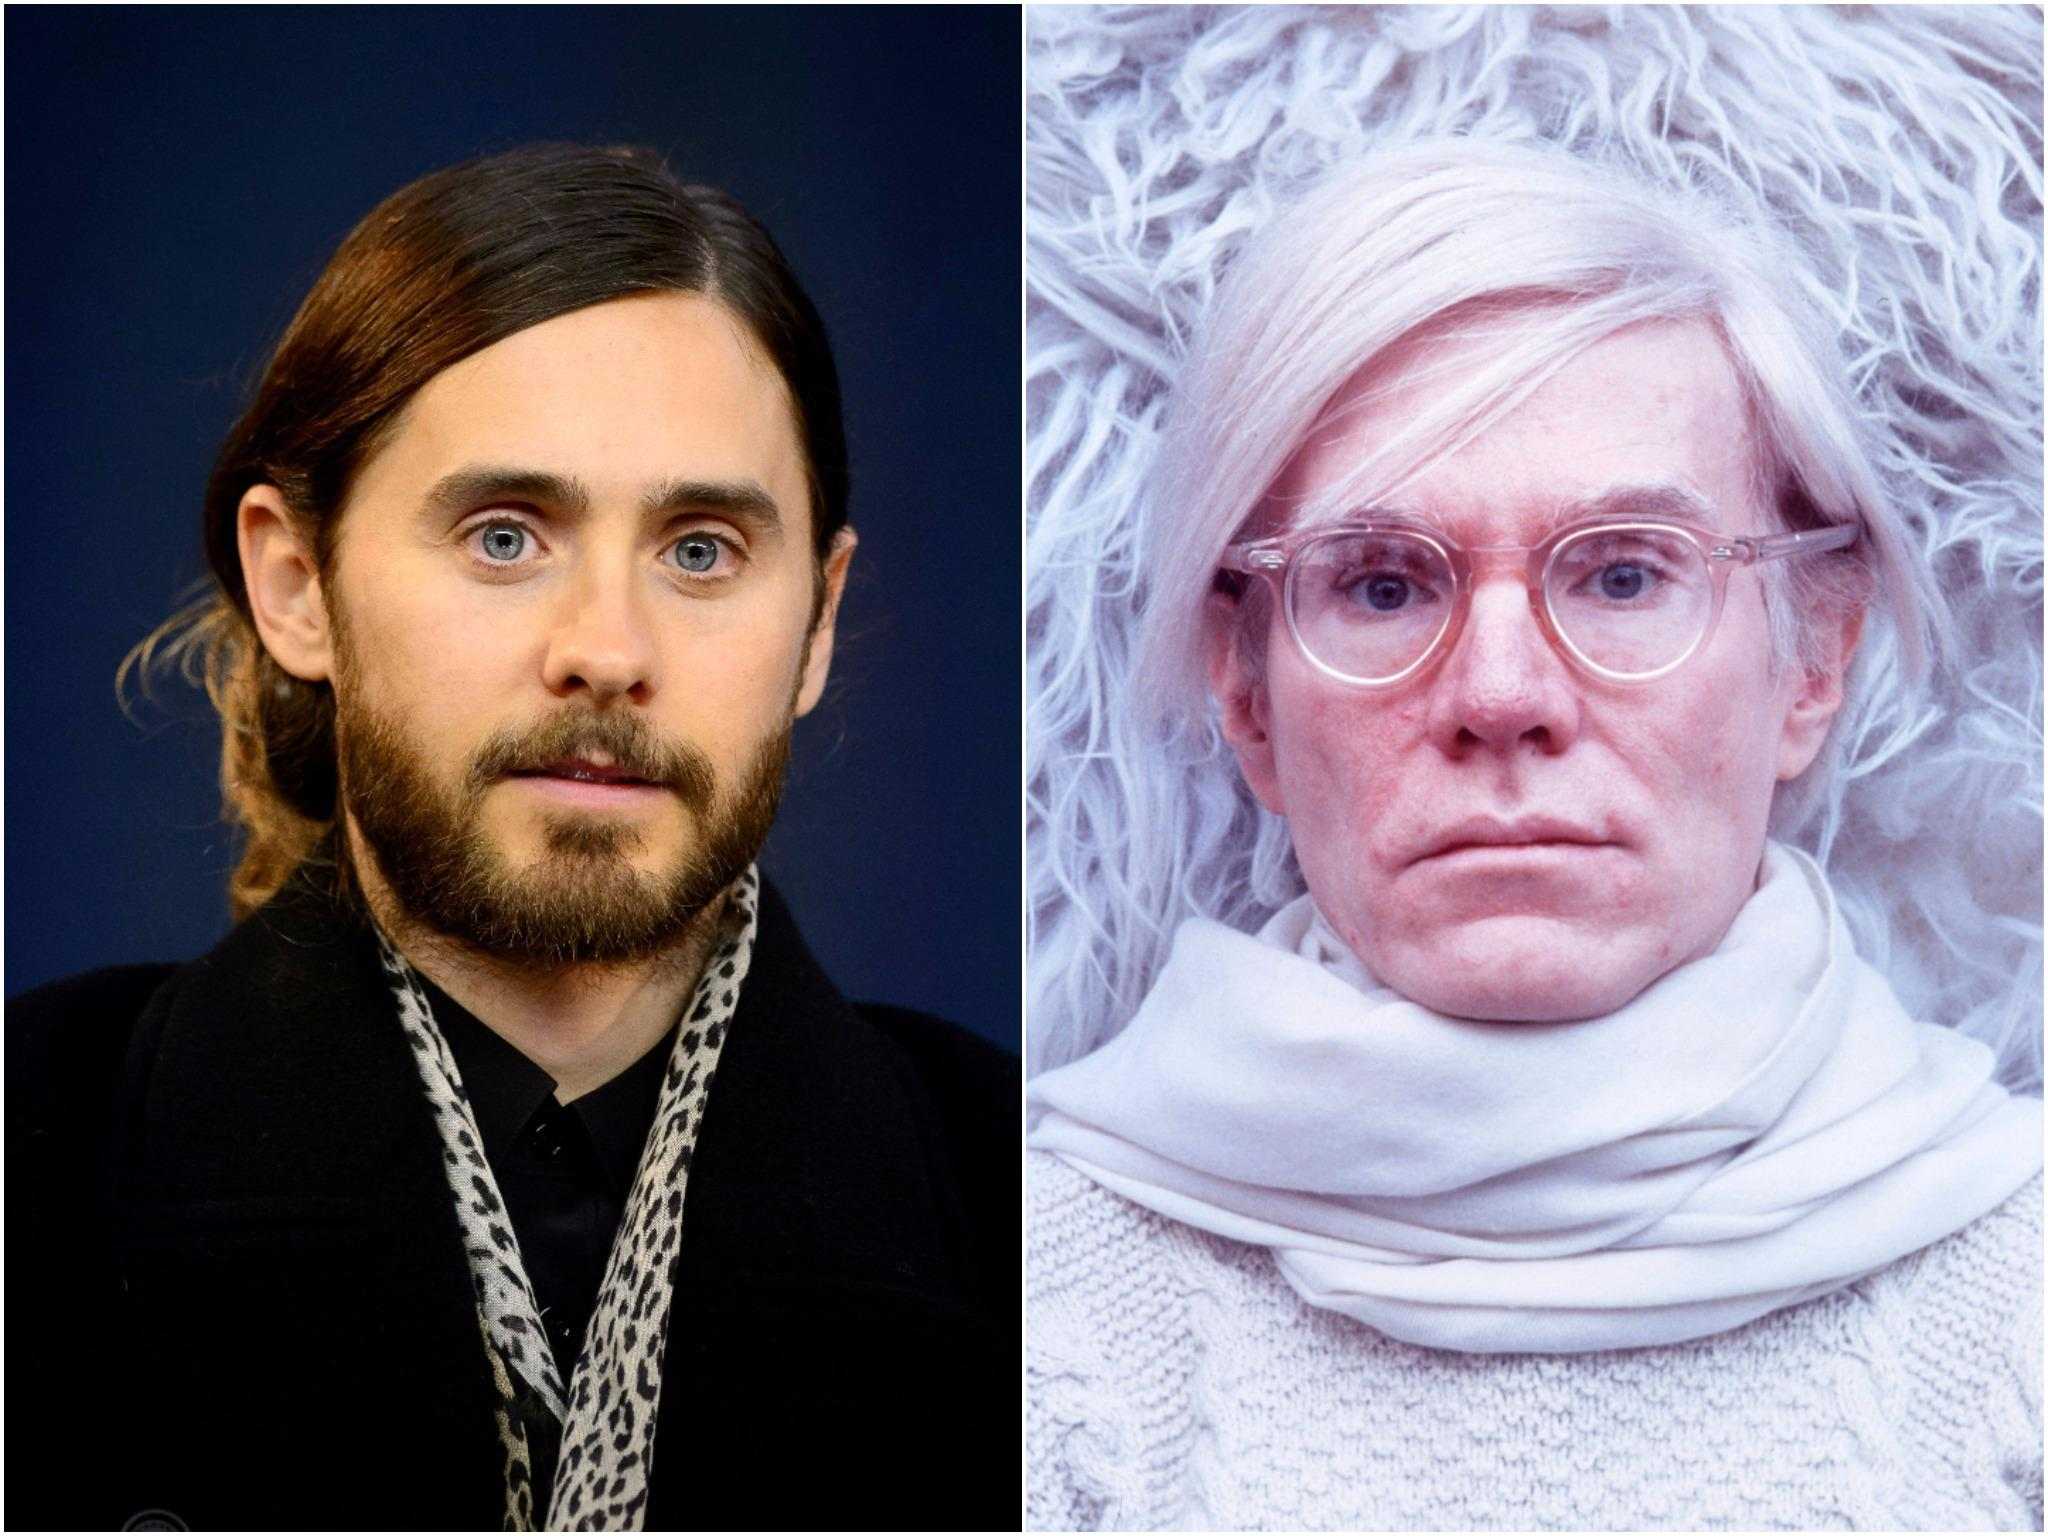 Jared Leto confirmed to play Andy Warhol in biopic from The Social Network producer